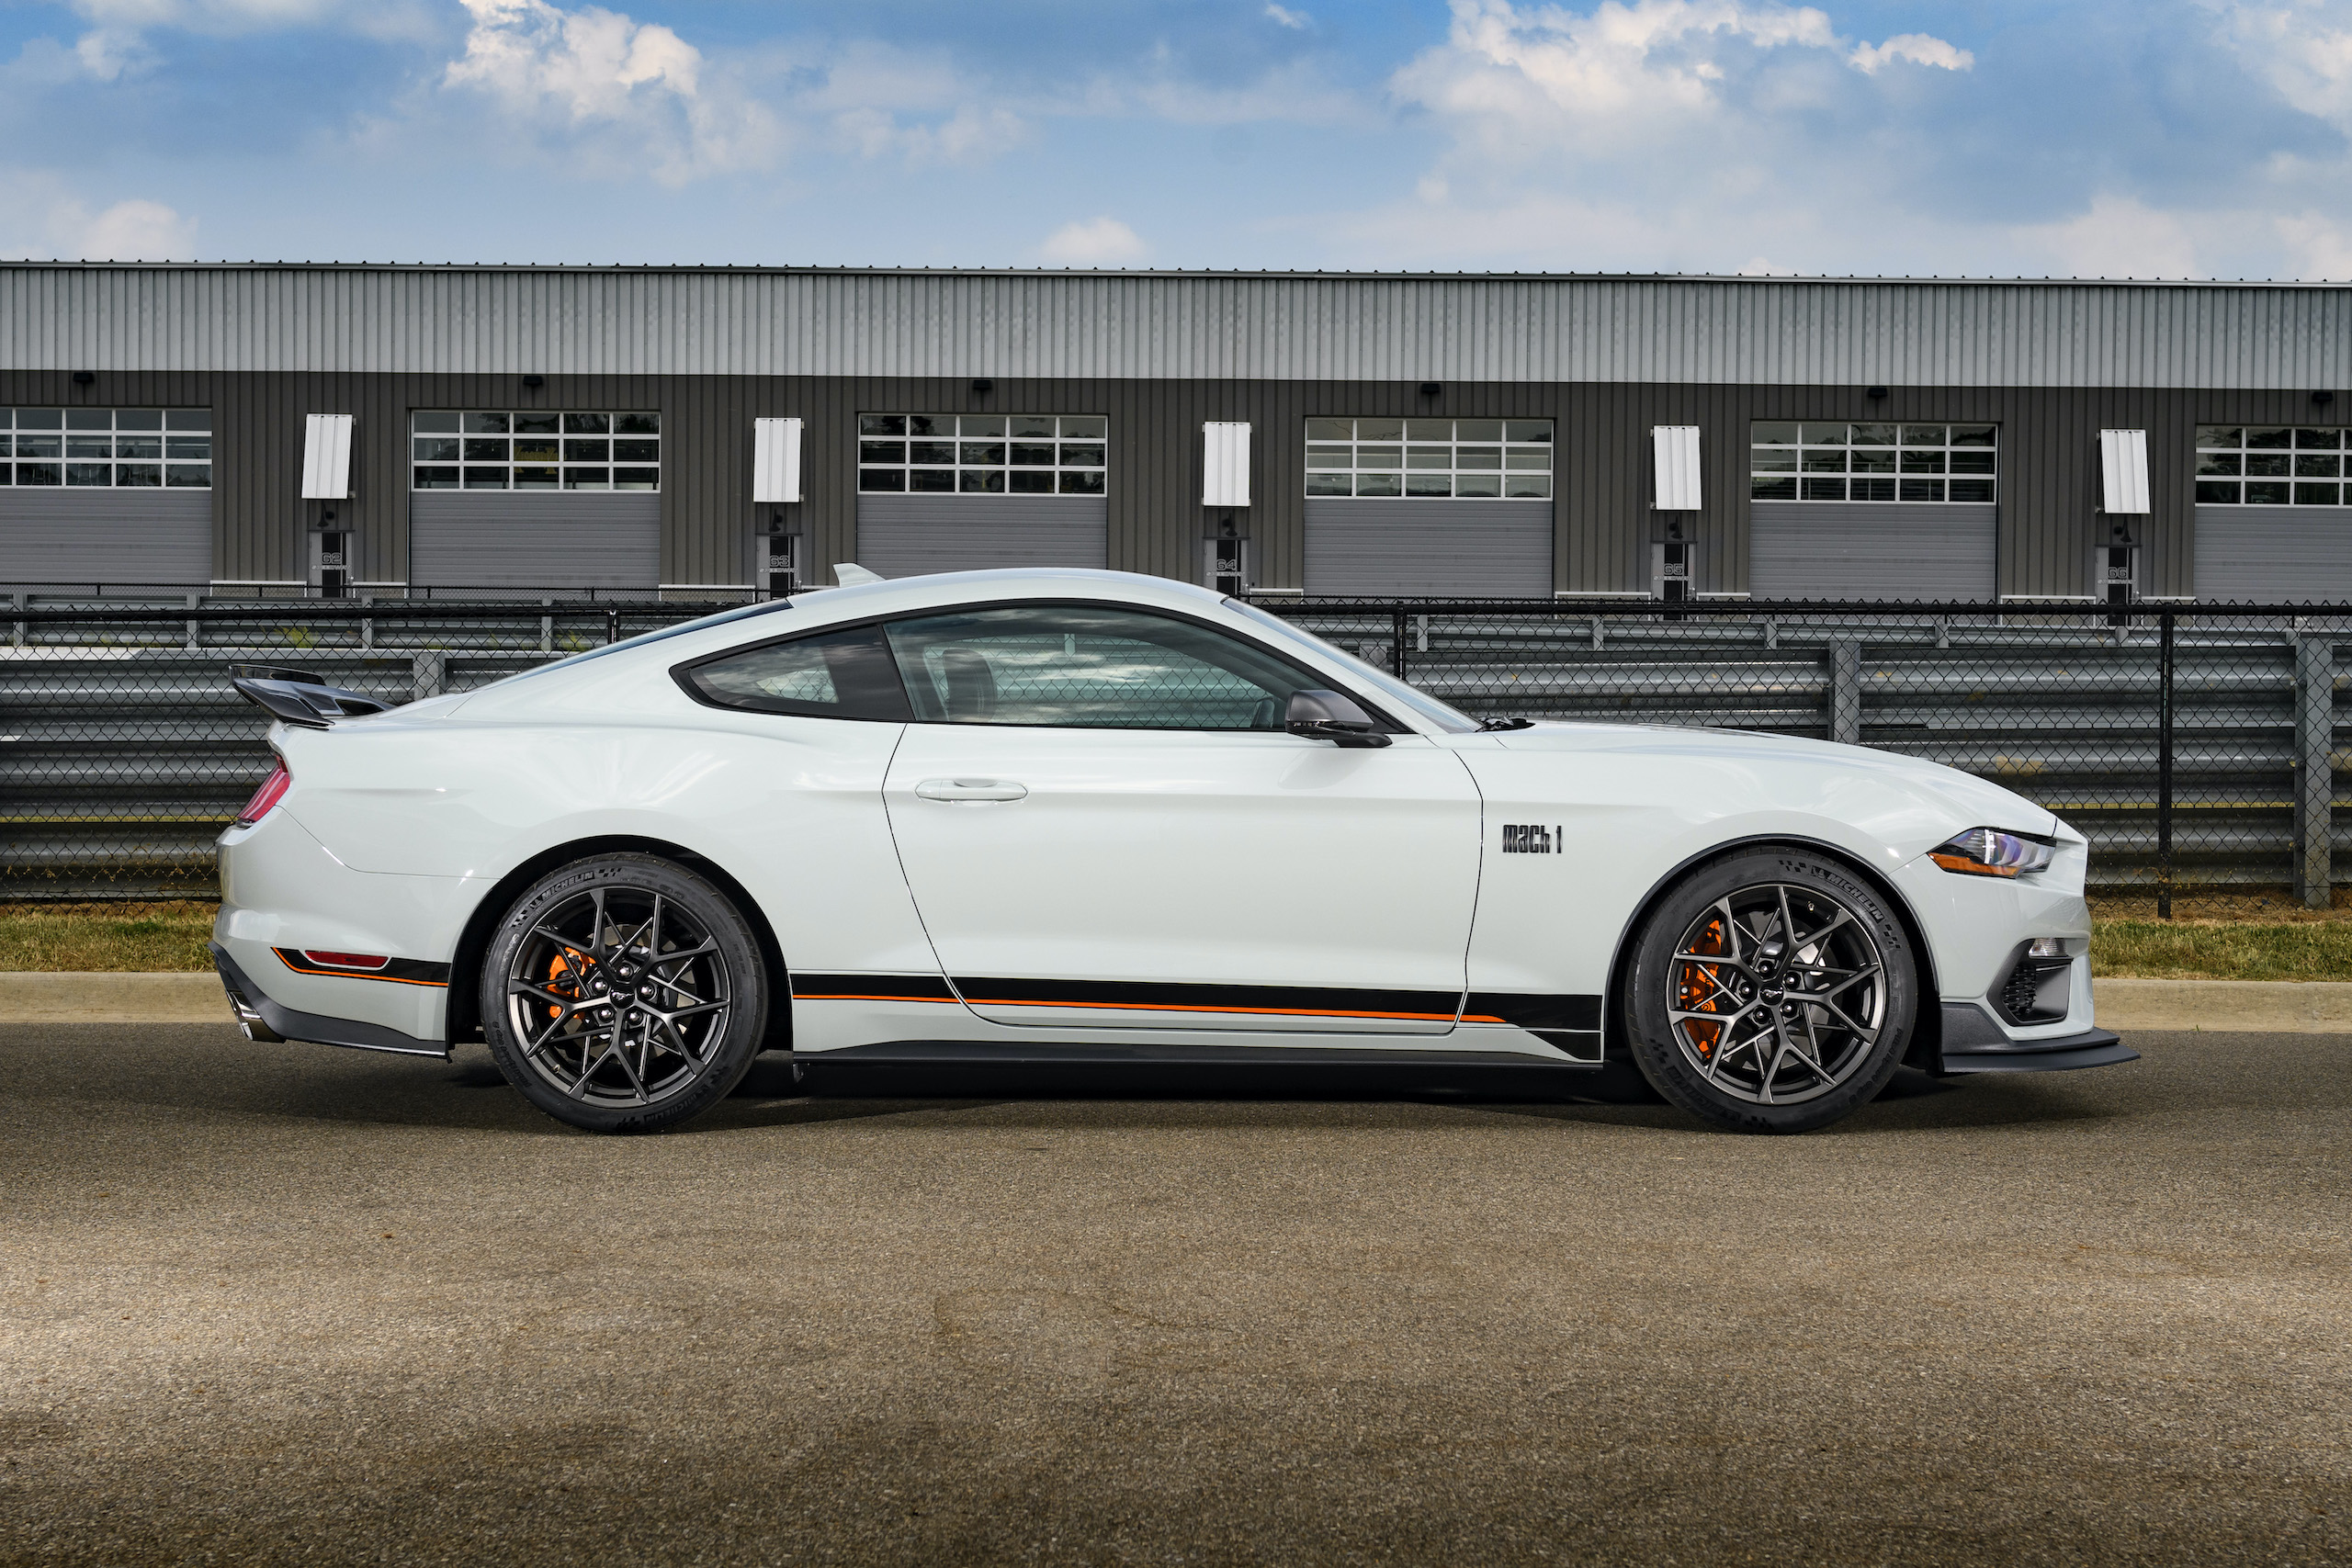 2021 Mustang Mach 1 white side profile